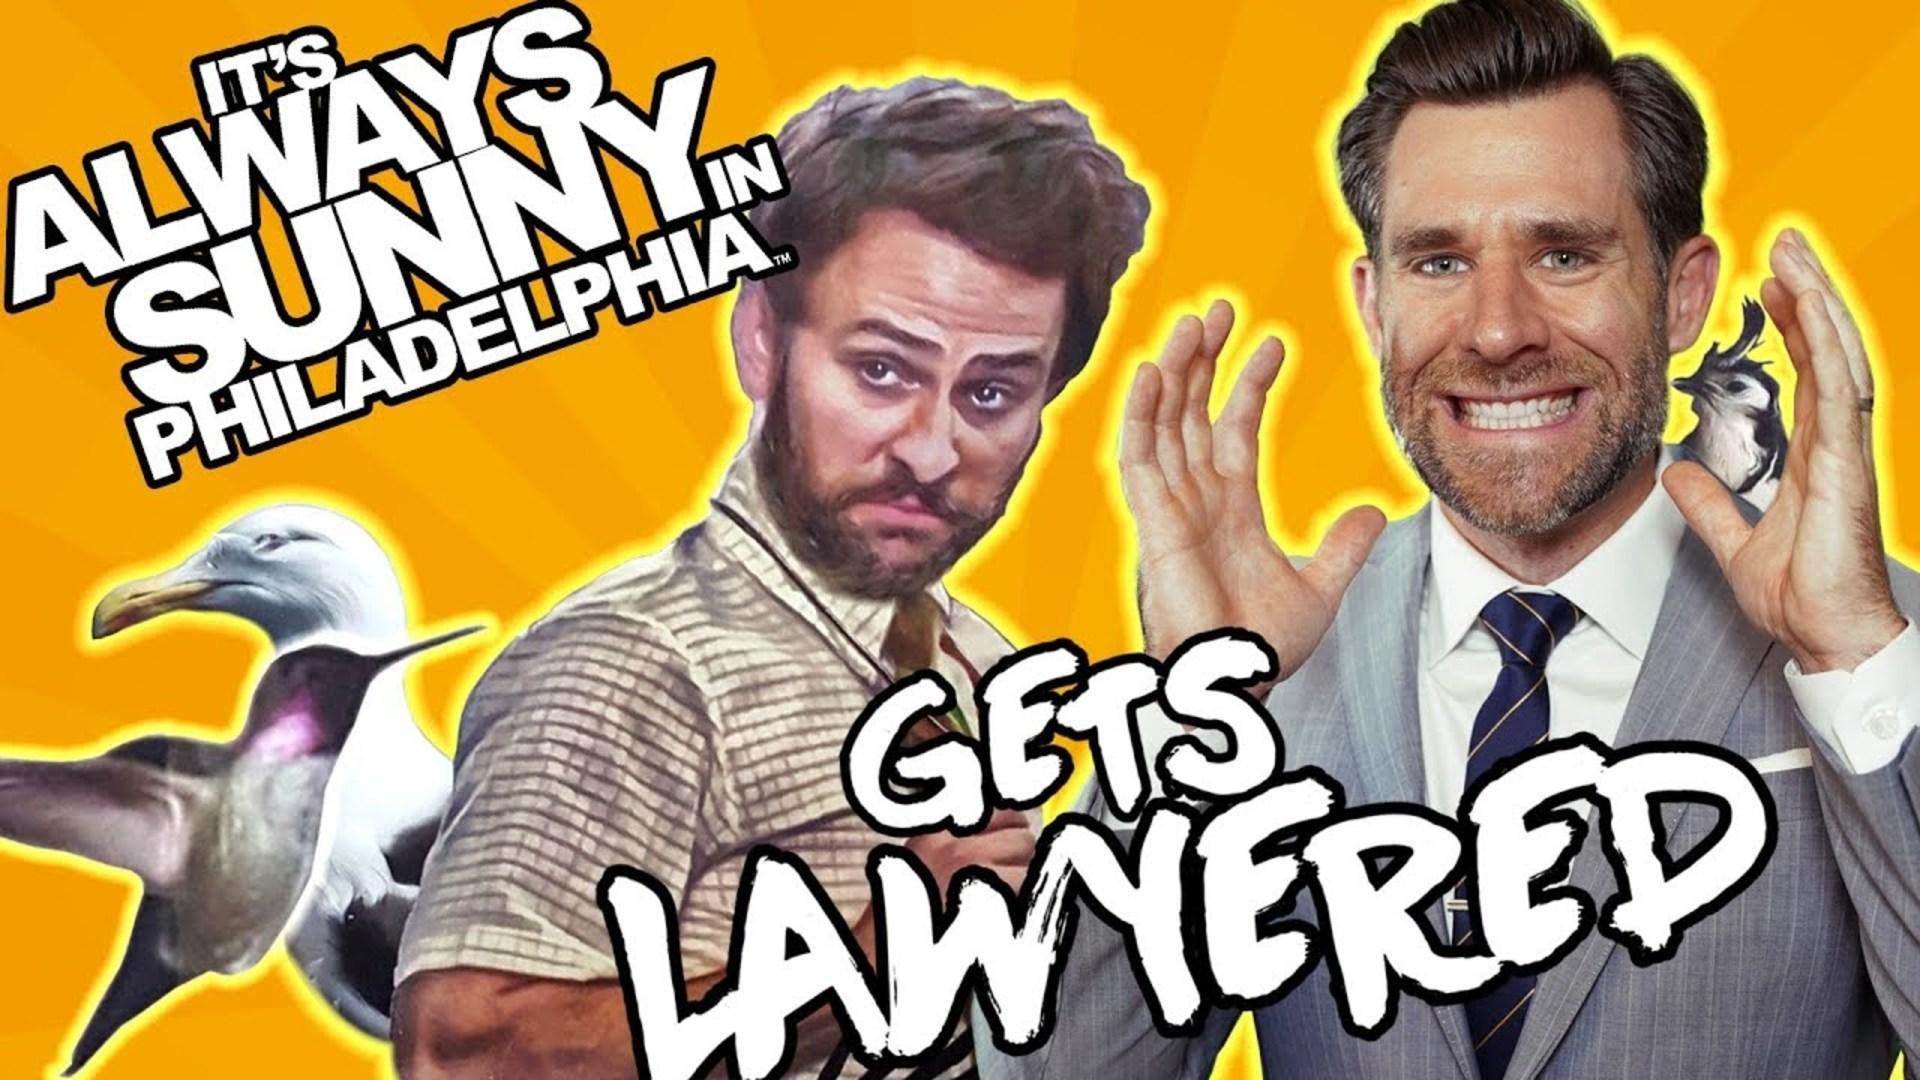 Always Sunny In Philadelphia Clips real lawyer reacts to it's always sunny in philadelphia